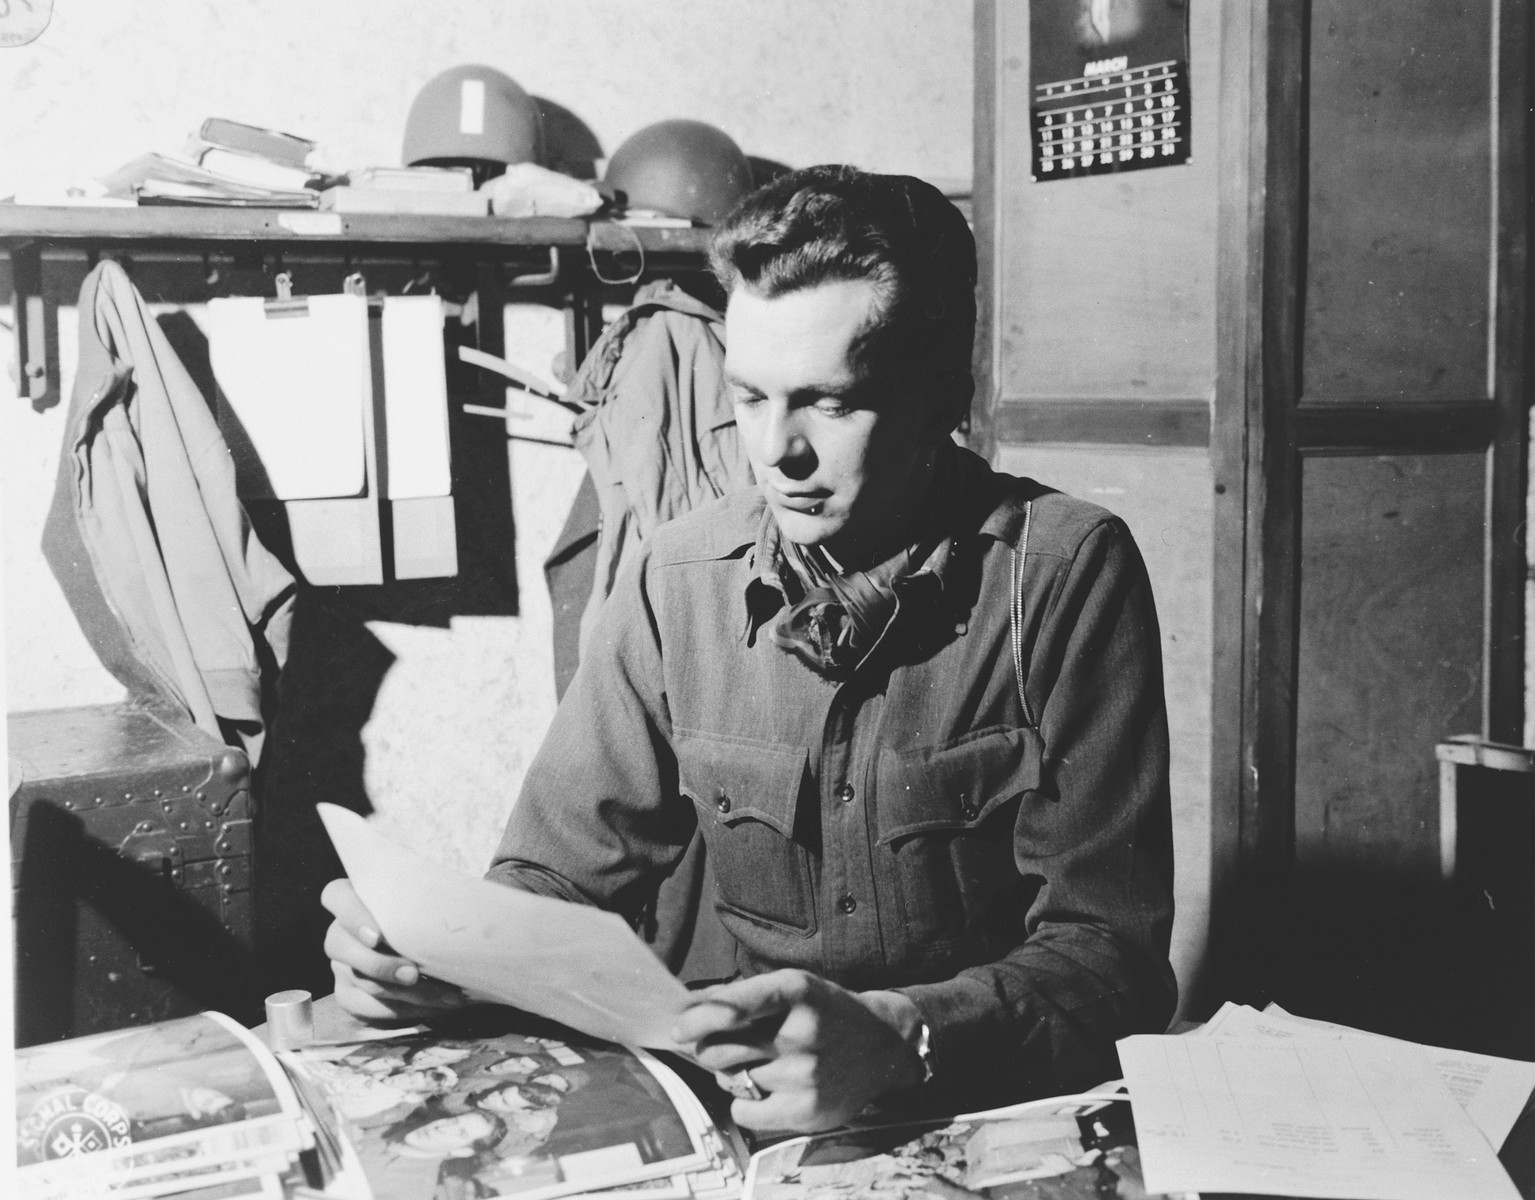 Portrait of U.S. combat photographer Arnold E. Samuelson studies a pile of photographs in his office.